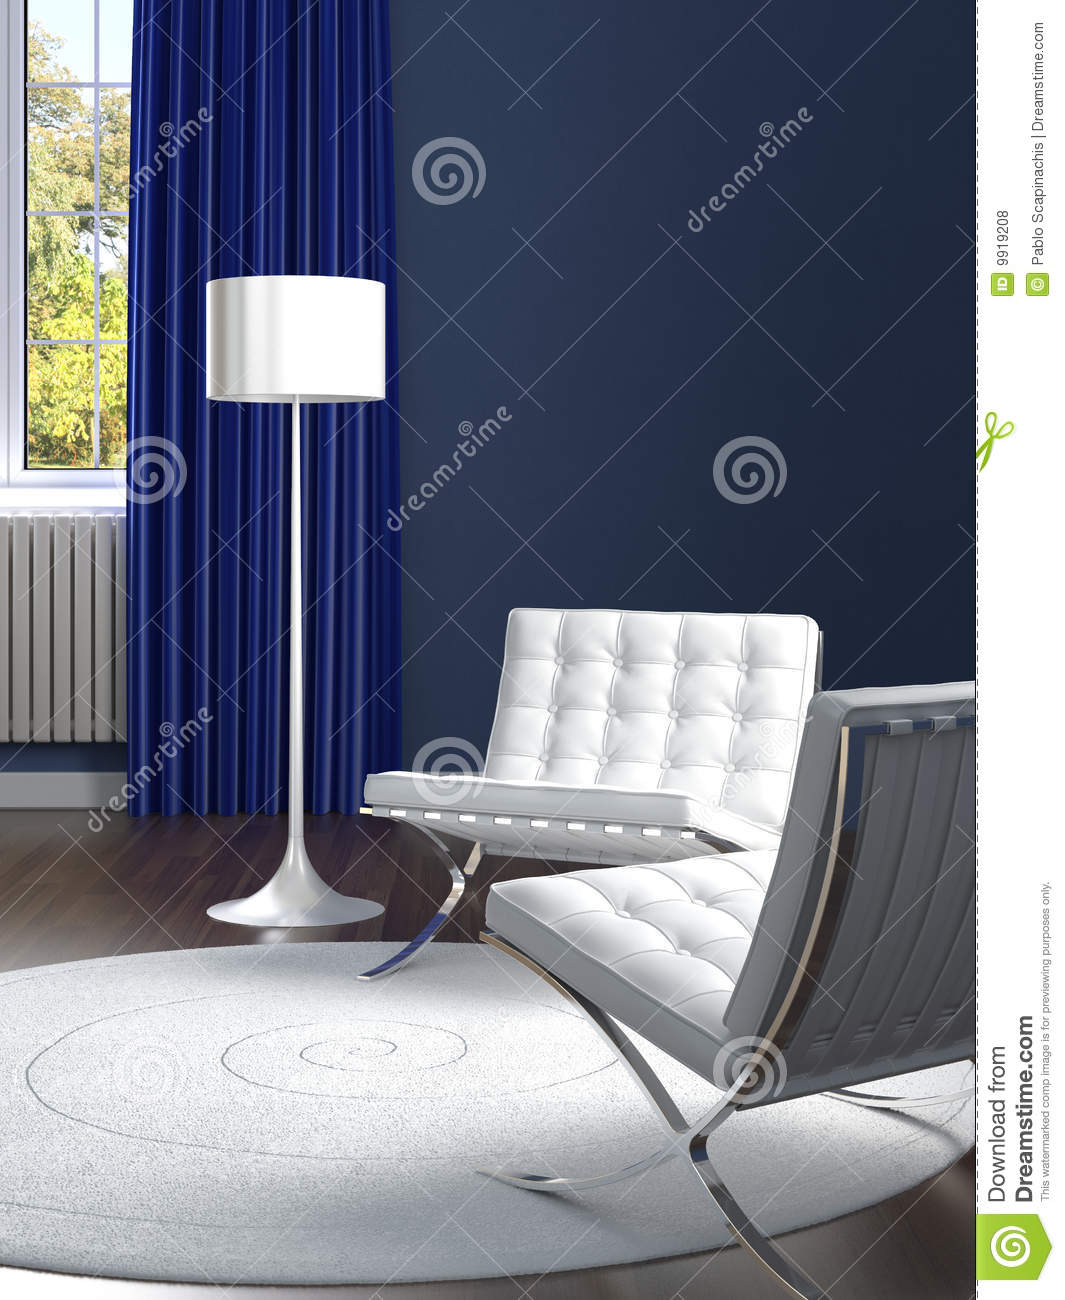 Interior Design Classic Blue And White Room Royalty Free